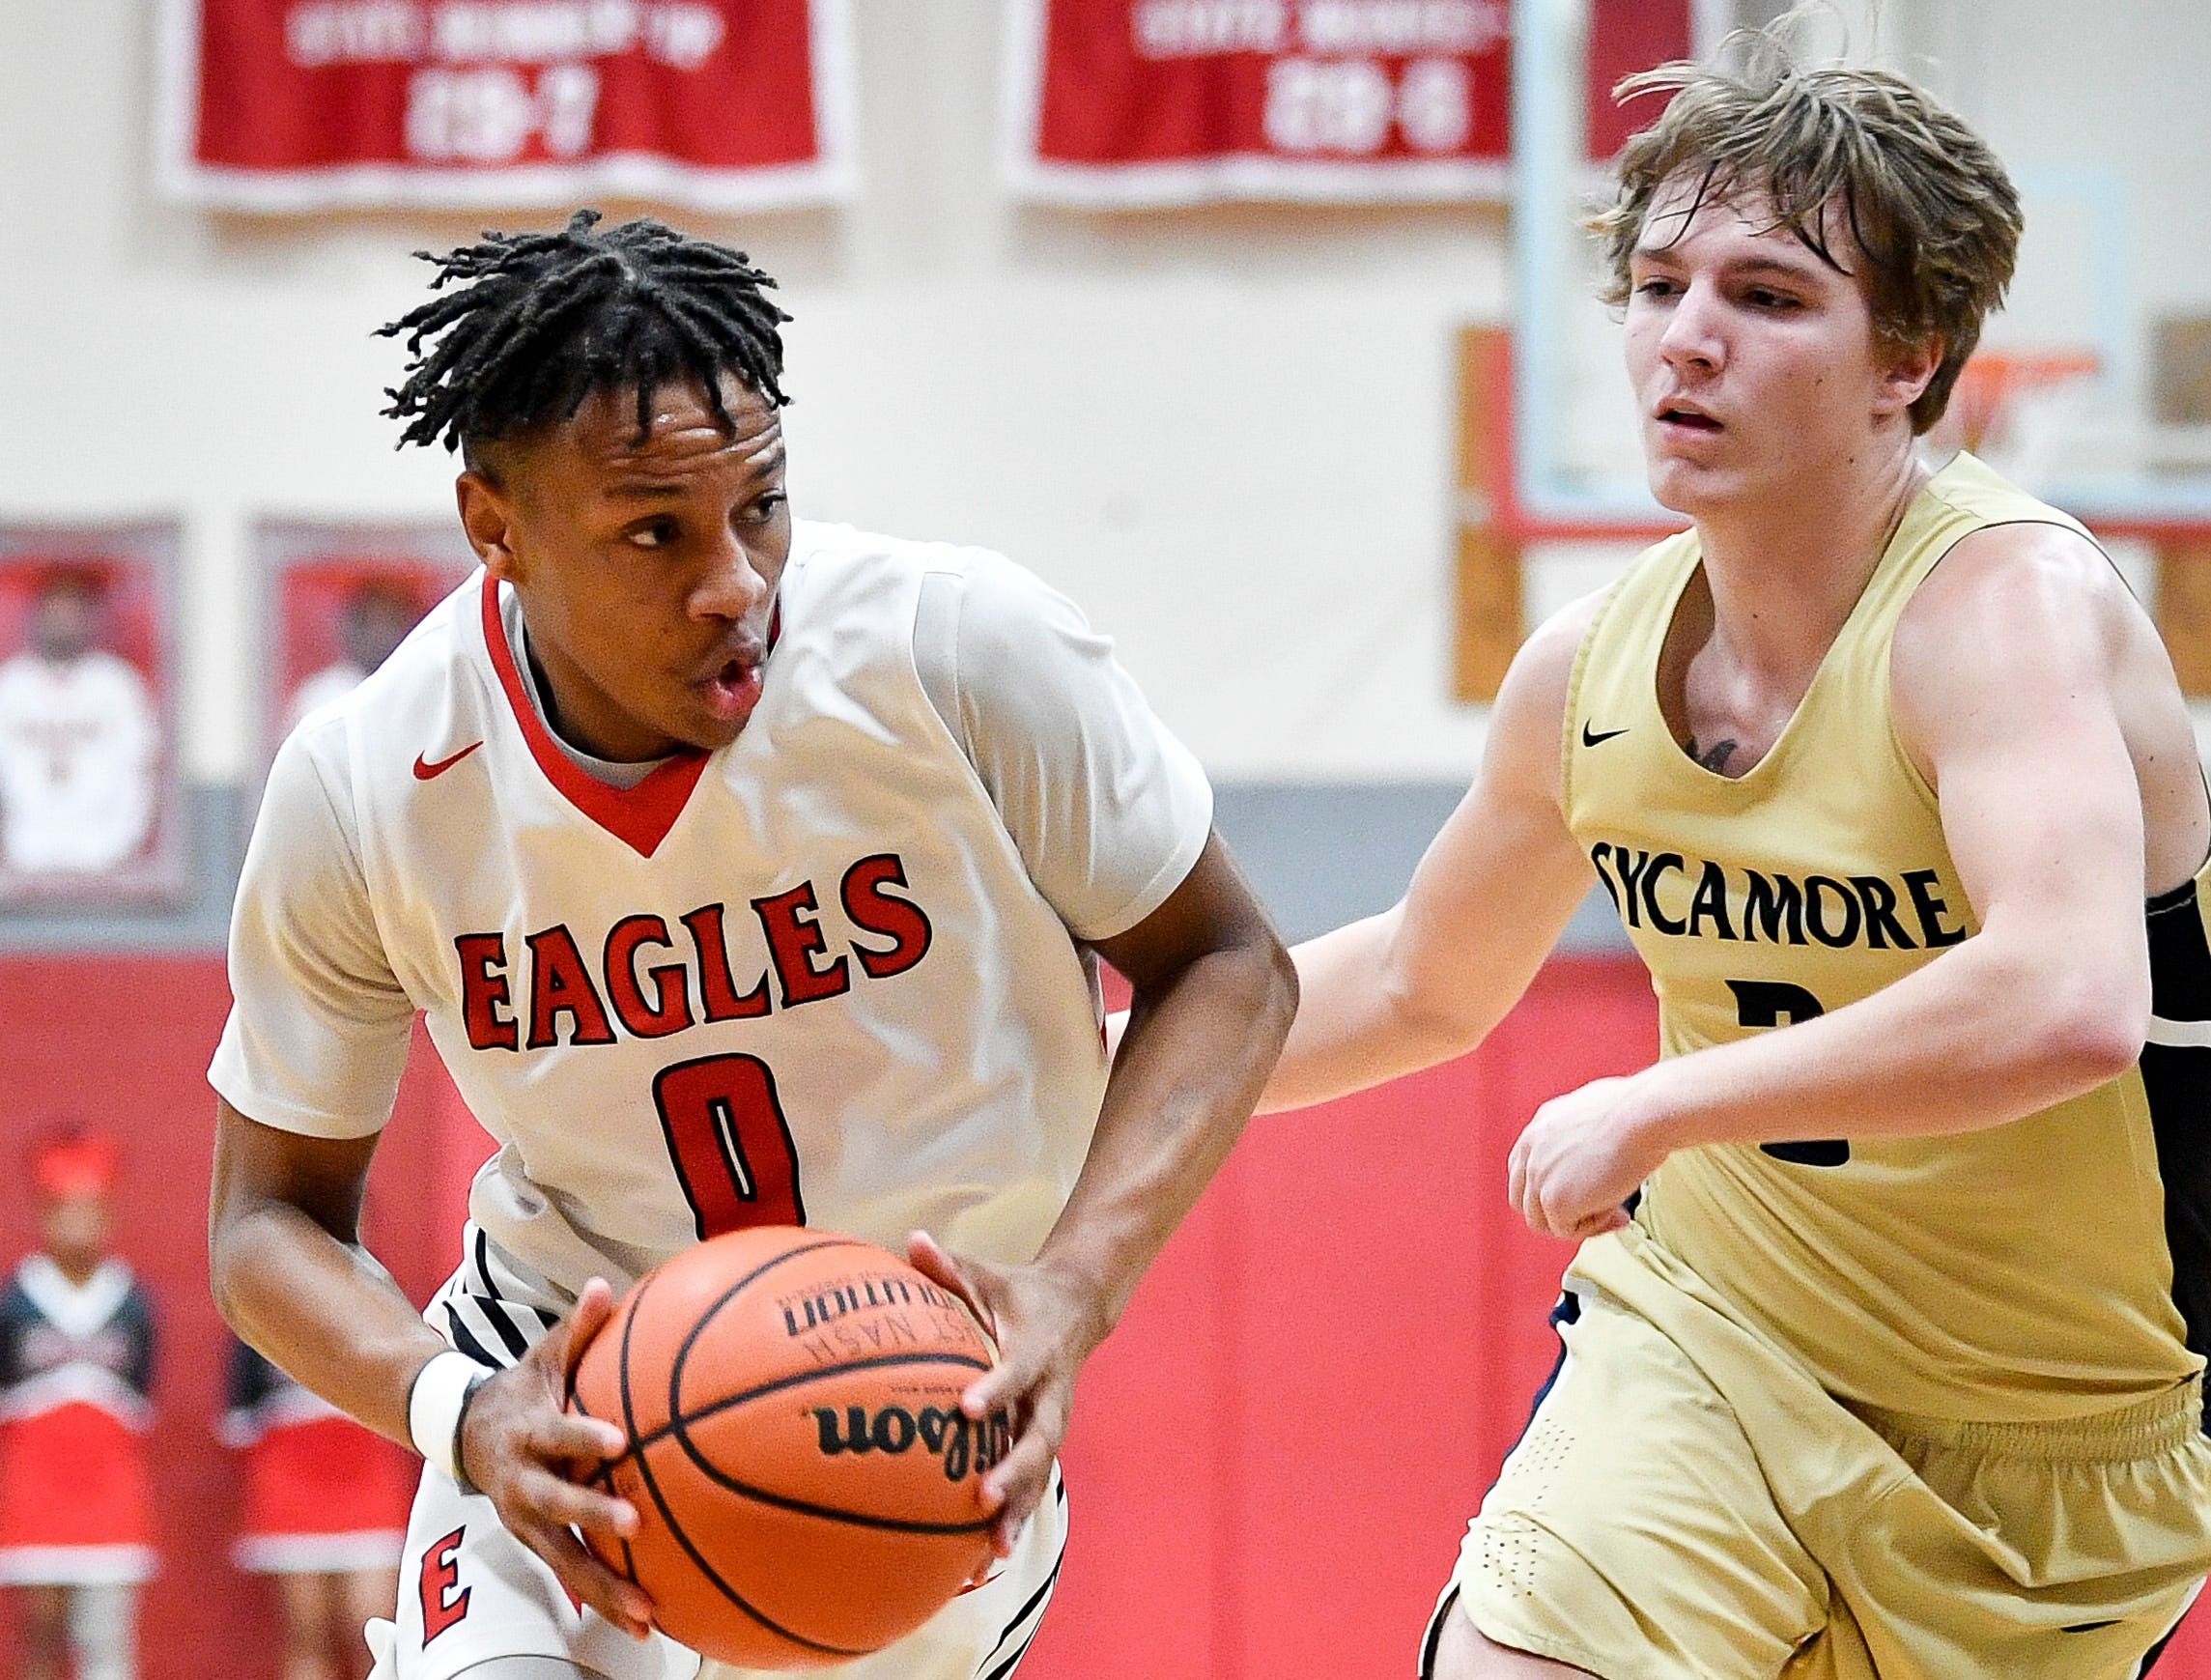 East Nashville's Taras Carter (0) advances past Sycamore's Trevor Gagnon (3) during the second half at East Nashville Magnet High School in Nashville, Tenn., Friday, Feb. 1, 2019.